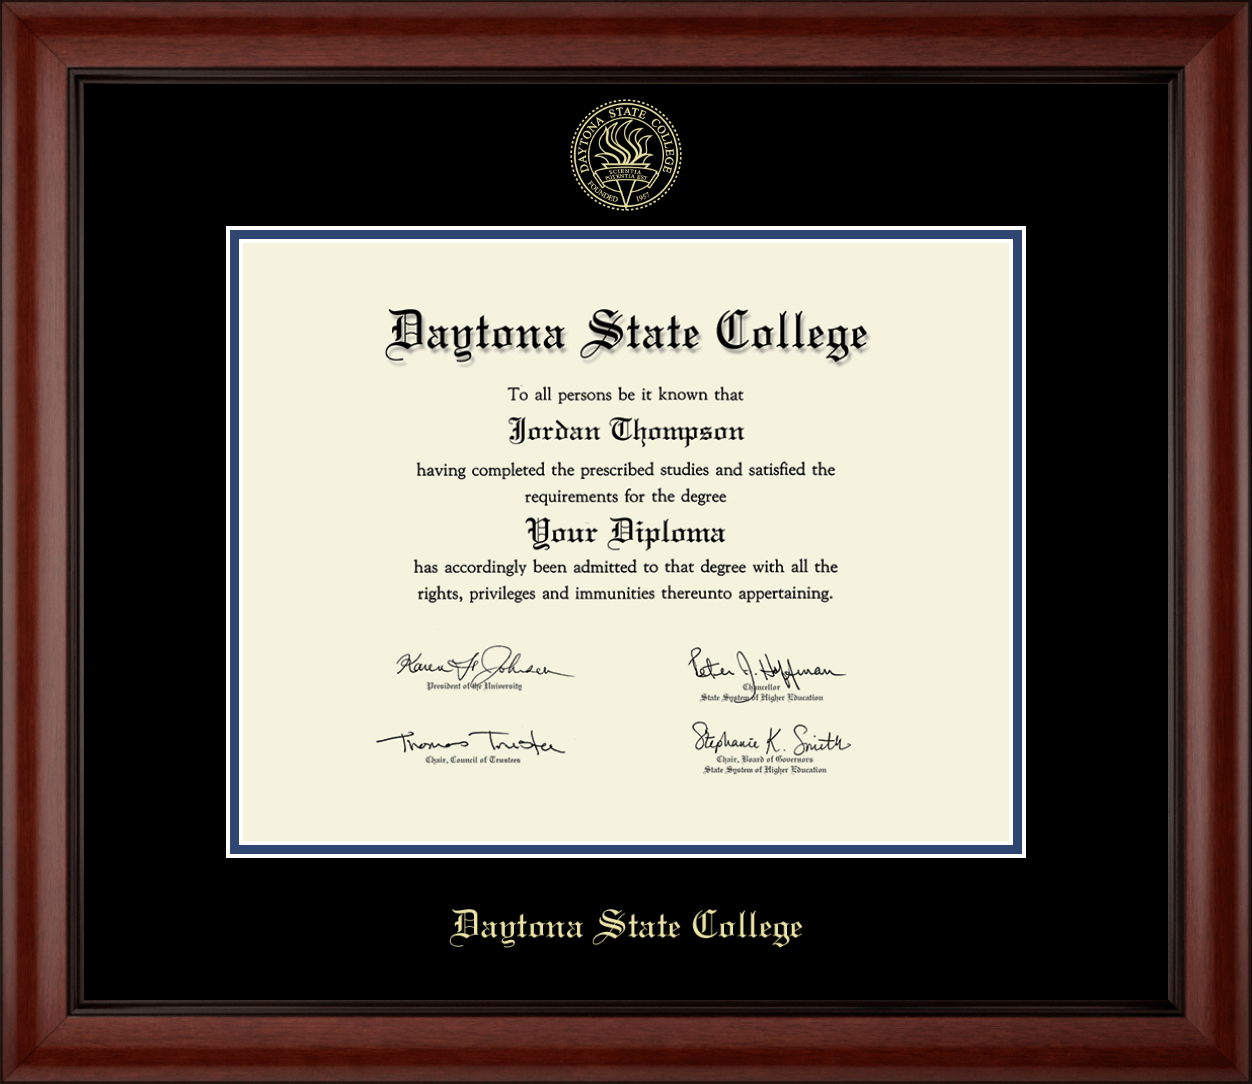 Daytona State College Gold Embossed Diploma Frame In Cambridge Item 202756